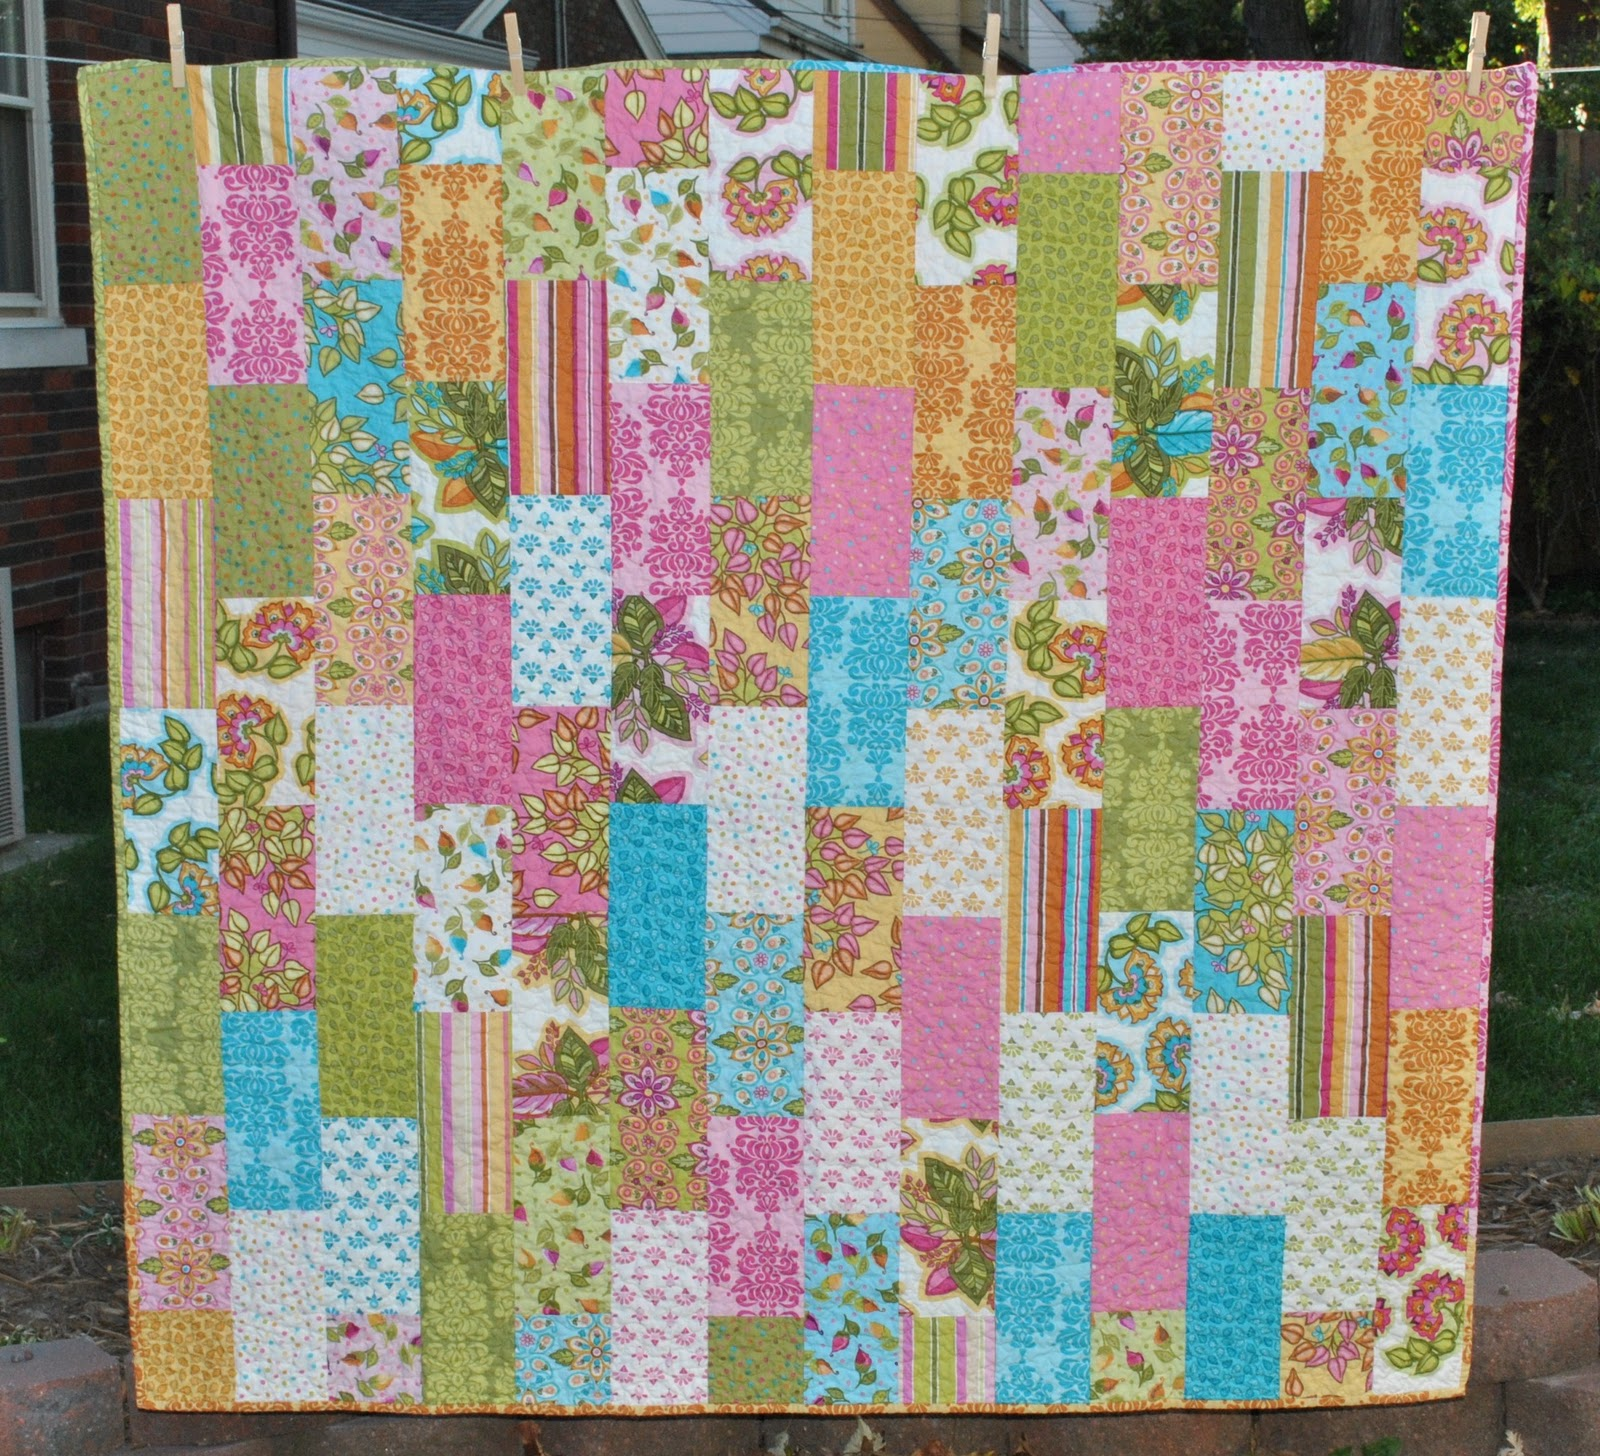 The Girl Who Quilts Quick Trick Brick Stack Quilt